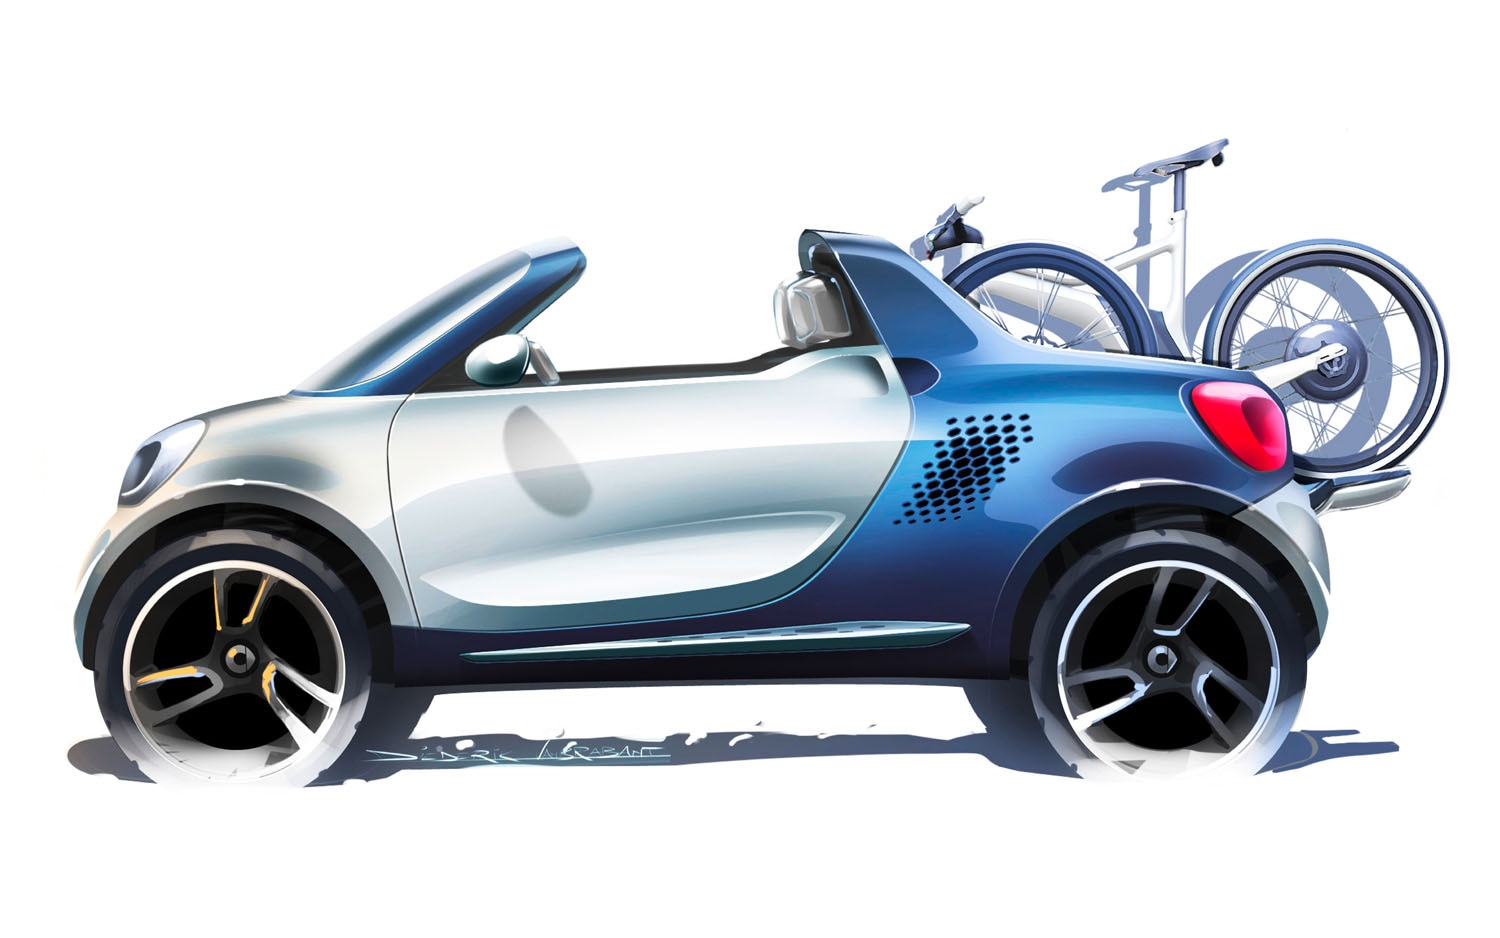 2012 Smart For Us Concept Sketch Left Side View 21